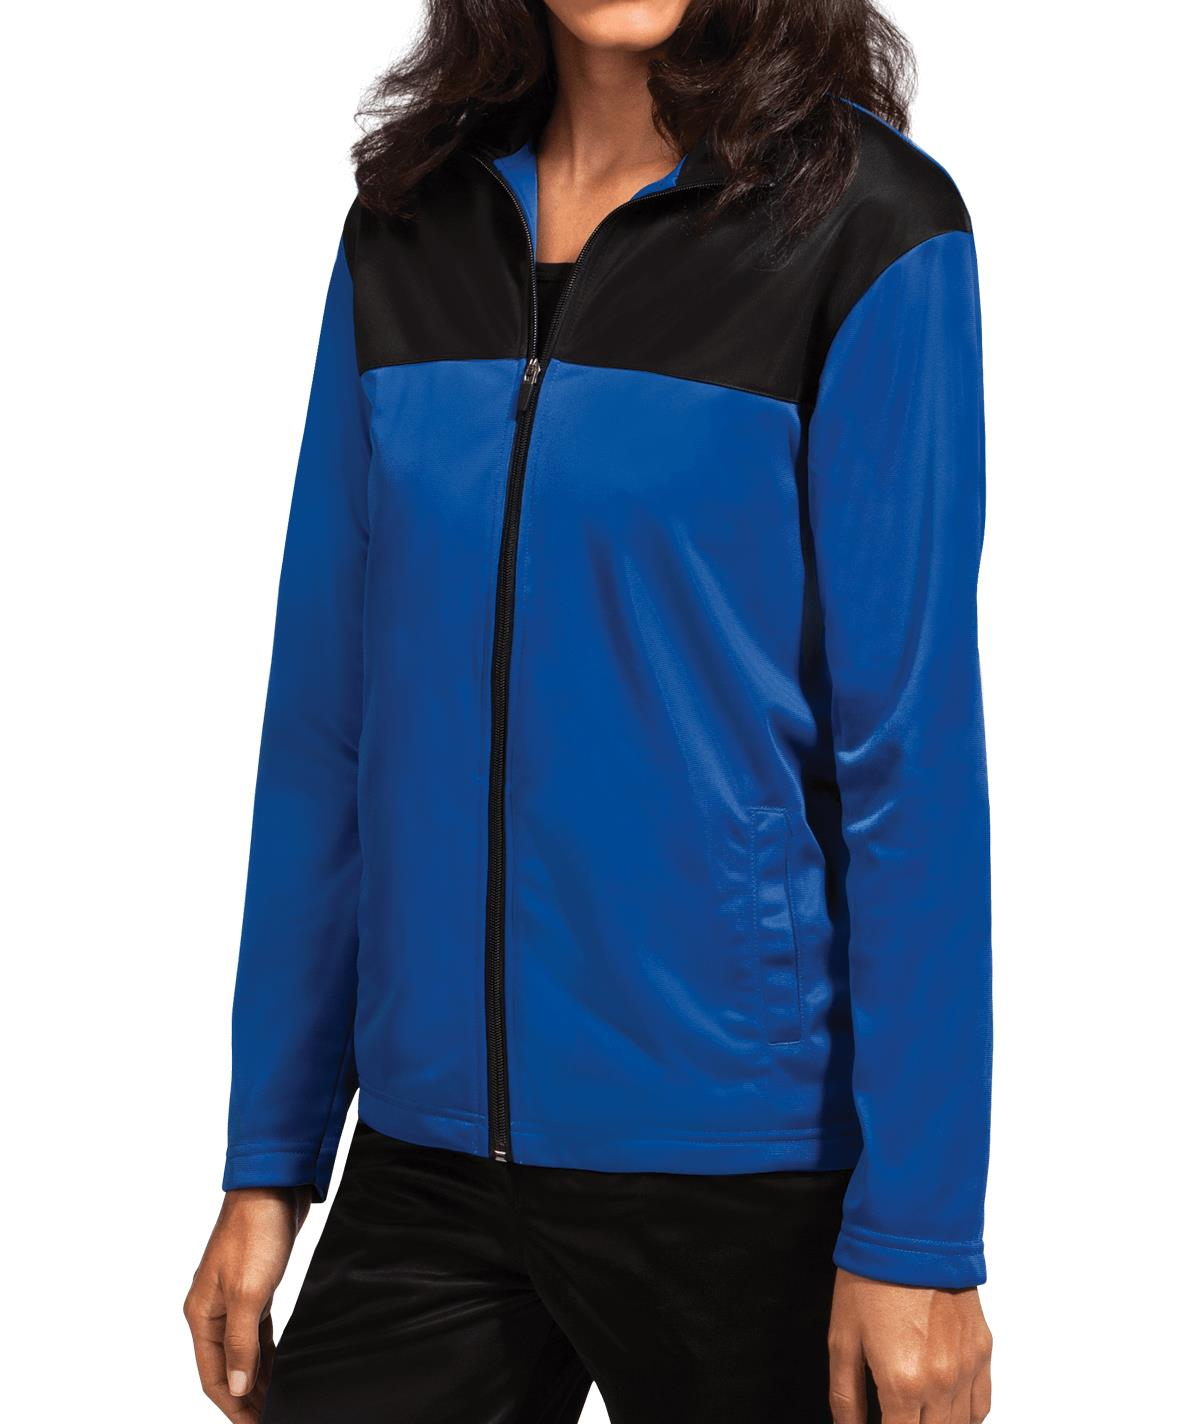 Ion Athletics Motivation Jacket